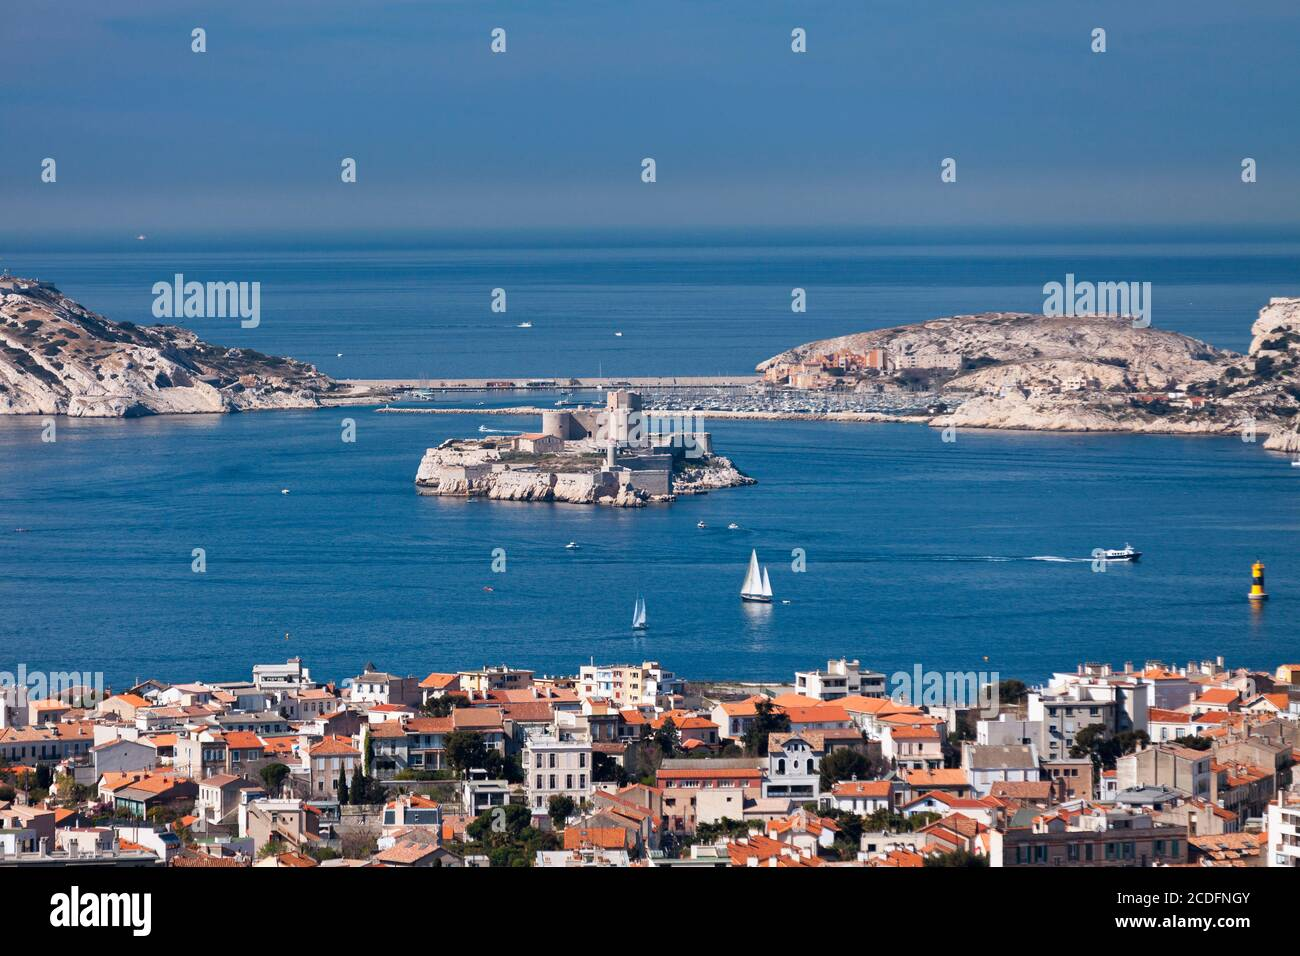 The Château d'If is a fortress (later a prison) located on the island of If, the smallest island in the Frioul archipelago situated in the Mediterrane Stock Photo